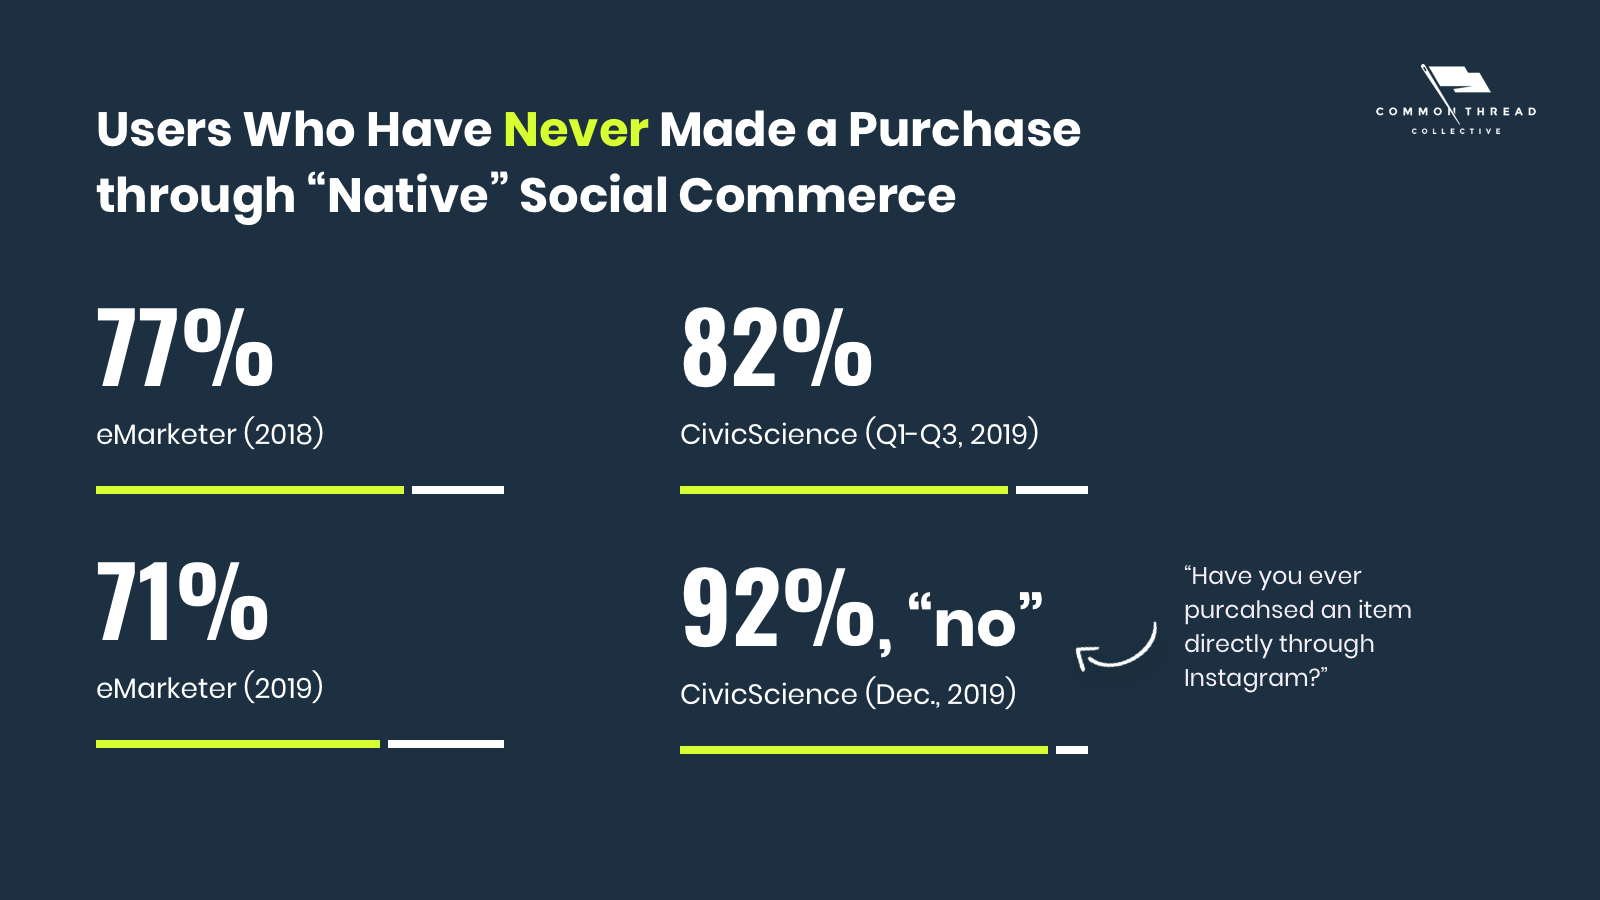 native social commerce usage rates